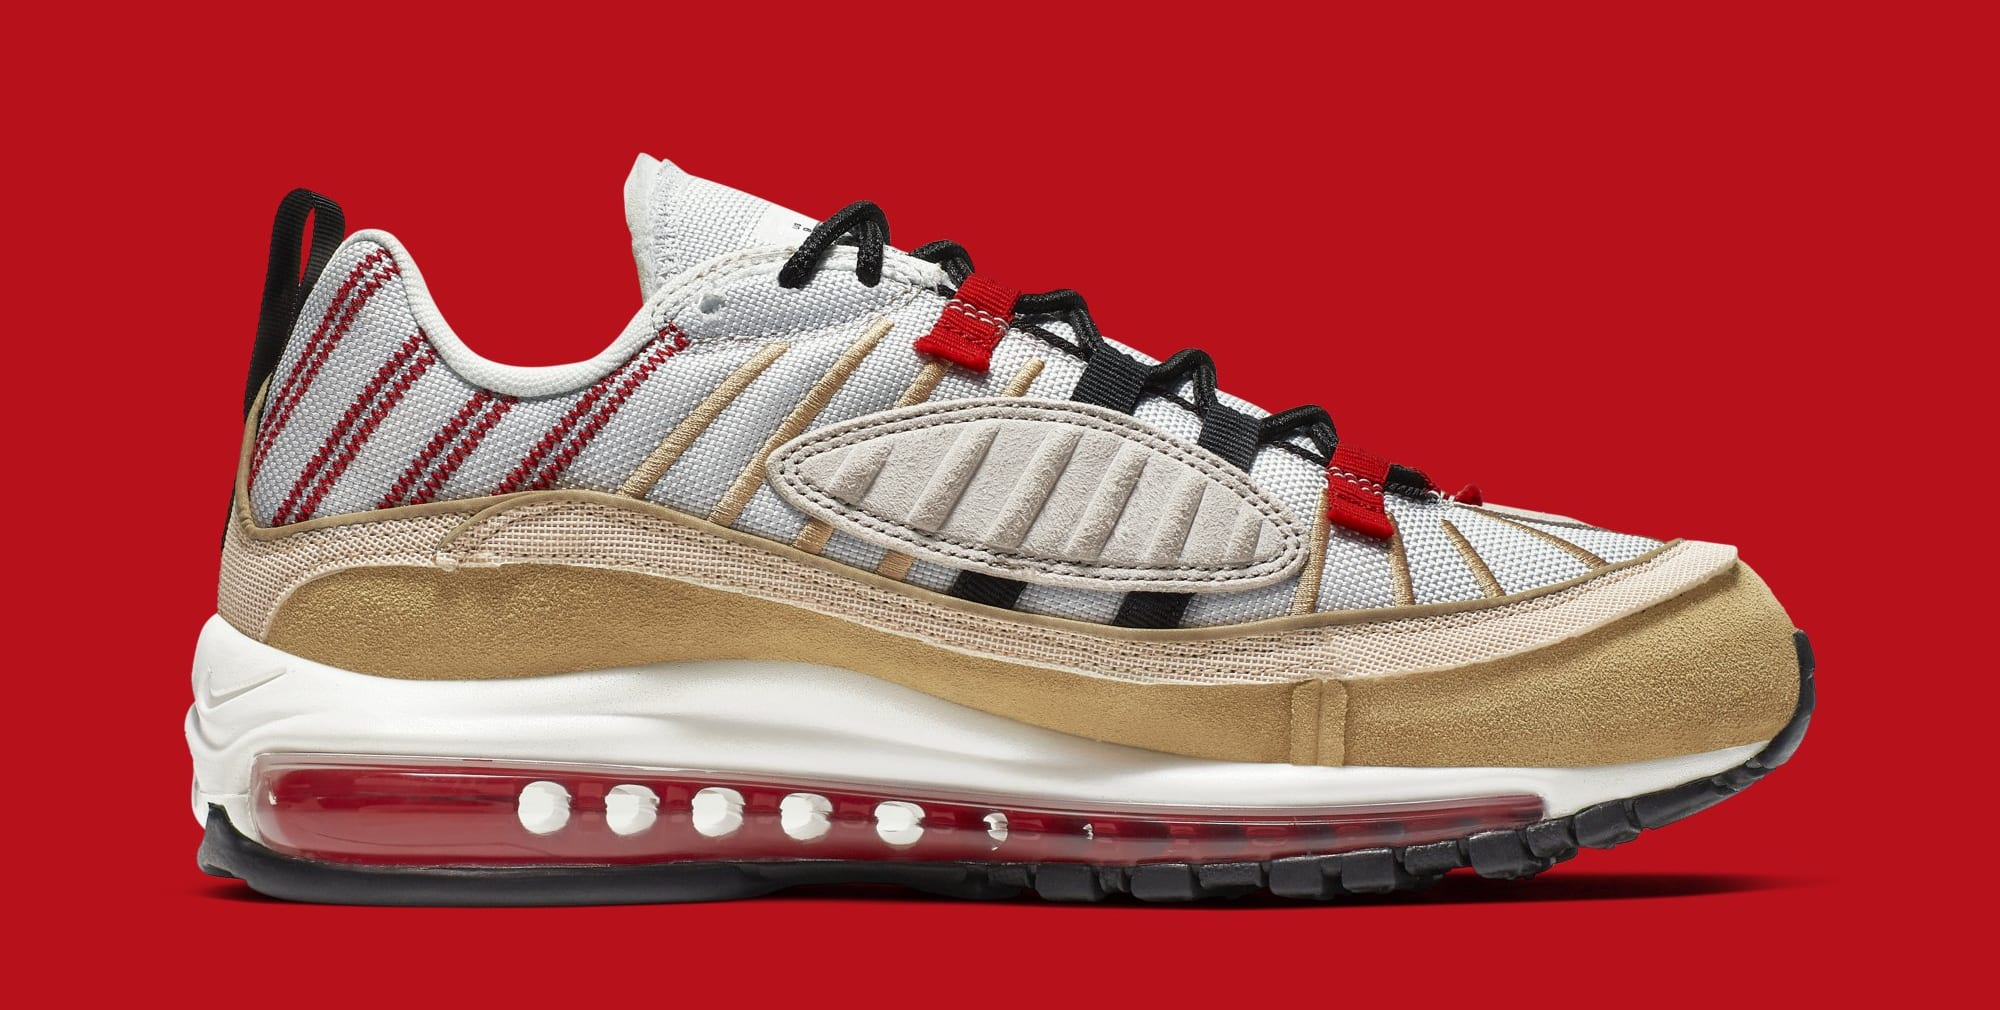 Nike Air Max 98 'Inside Out' AO9380-003 (Medial)